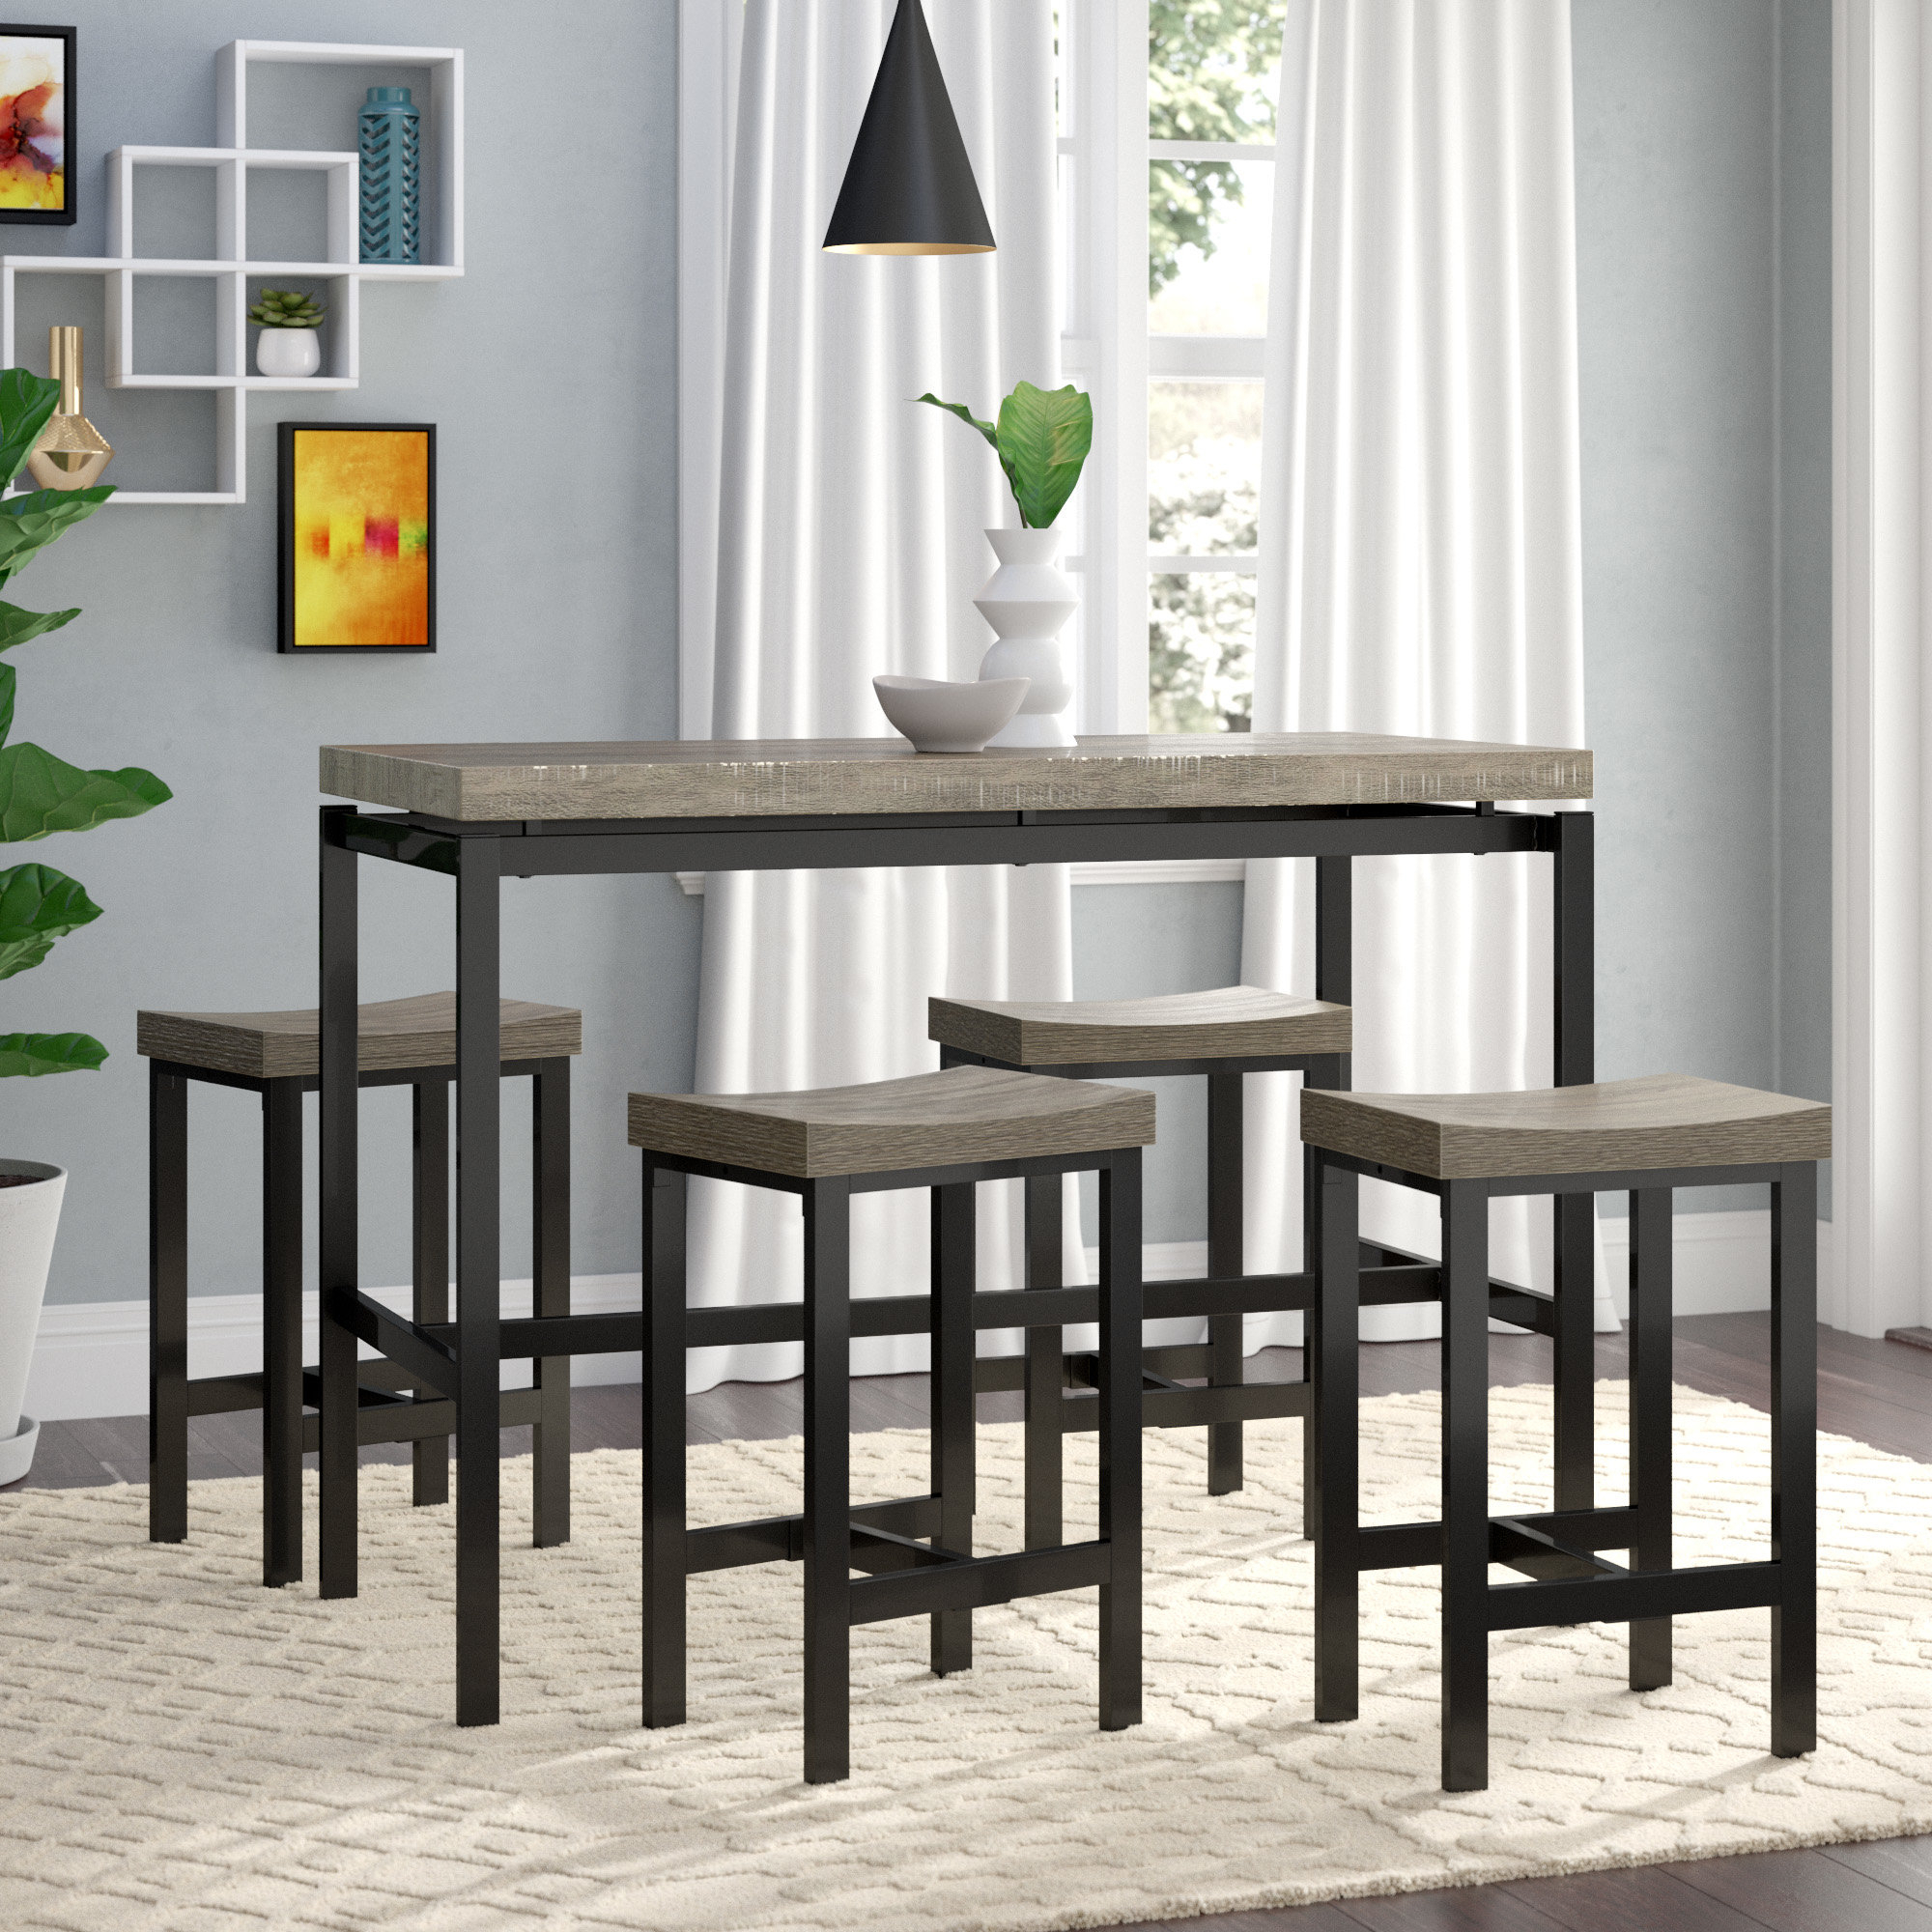 Newest Bryson 5 Piece Dining Sets intended for Wrought Studio Beveridge 5 Piece Dining Set & Reviews